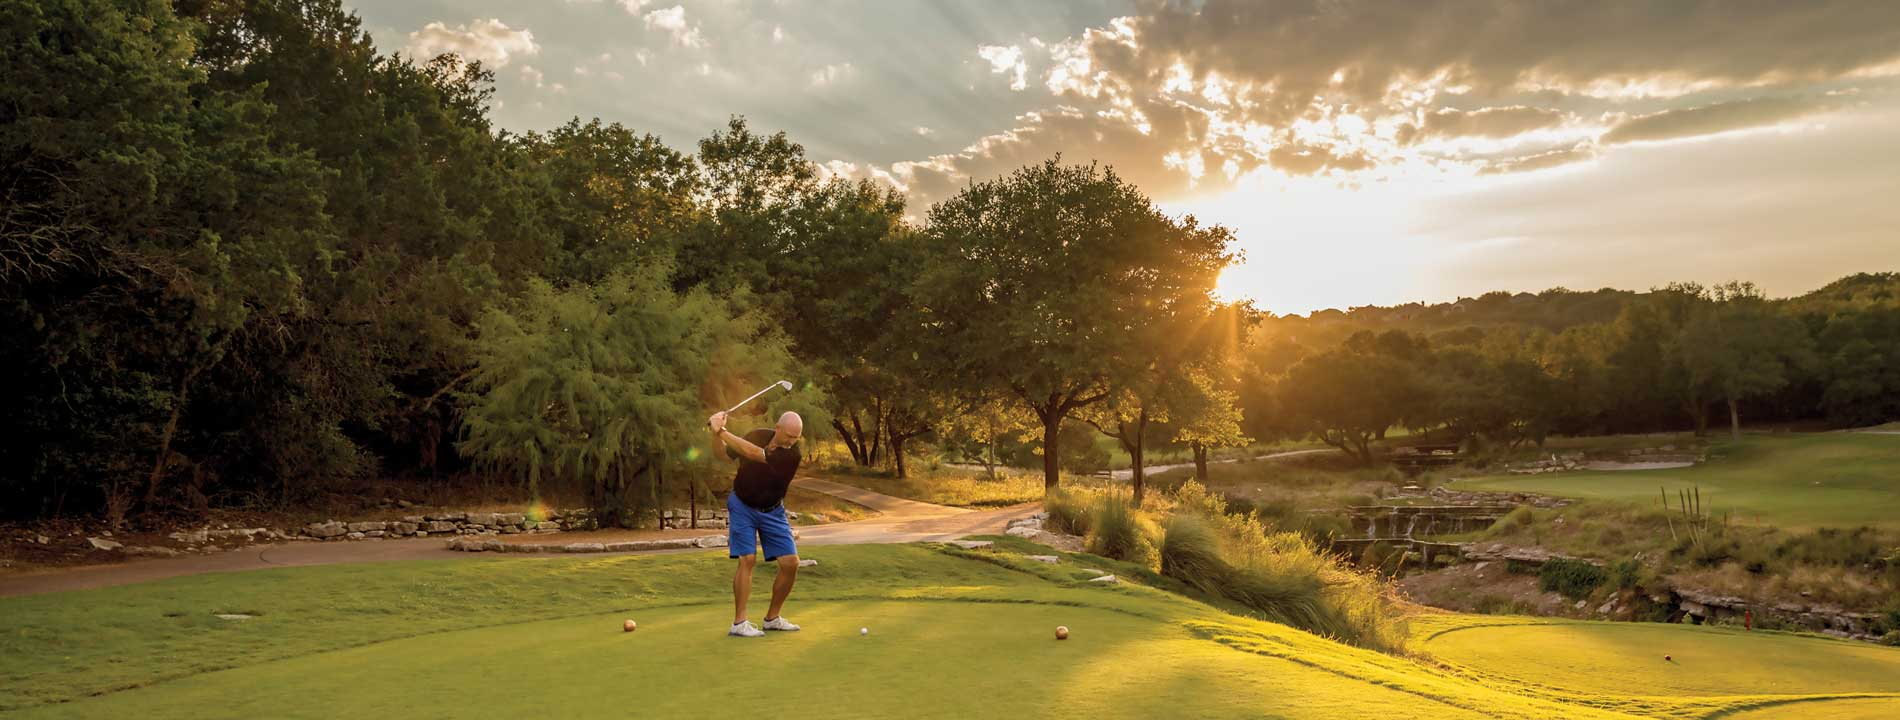 The Omni Barton Creek Resort & Spa in Austin, Tex. recently reopened after a nearly year-long, $150-million renovation.